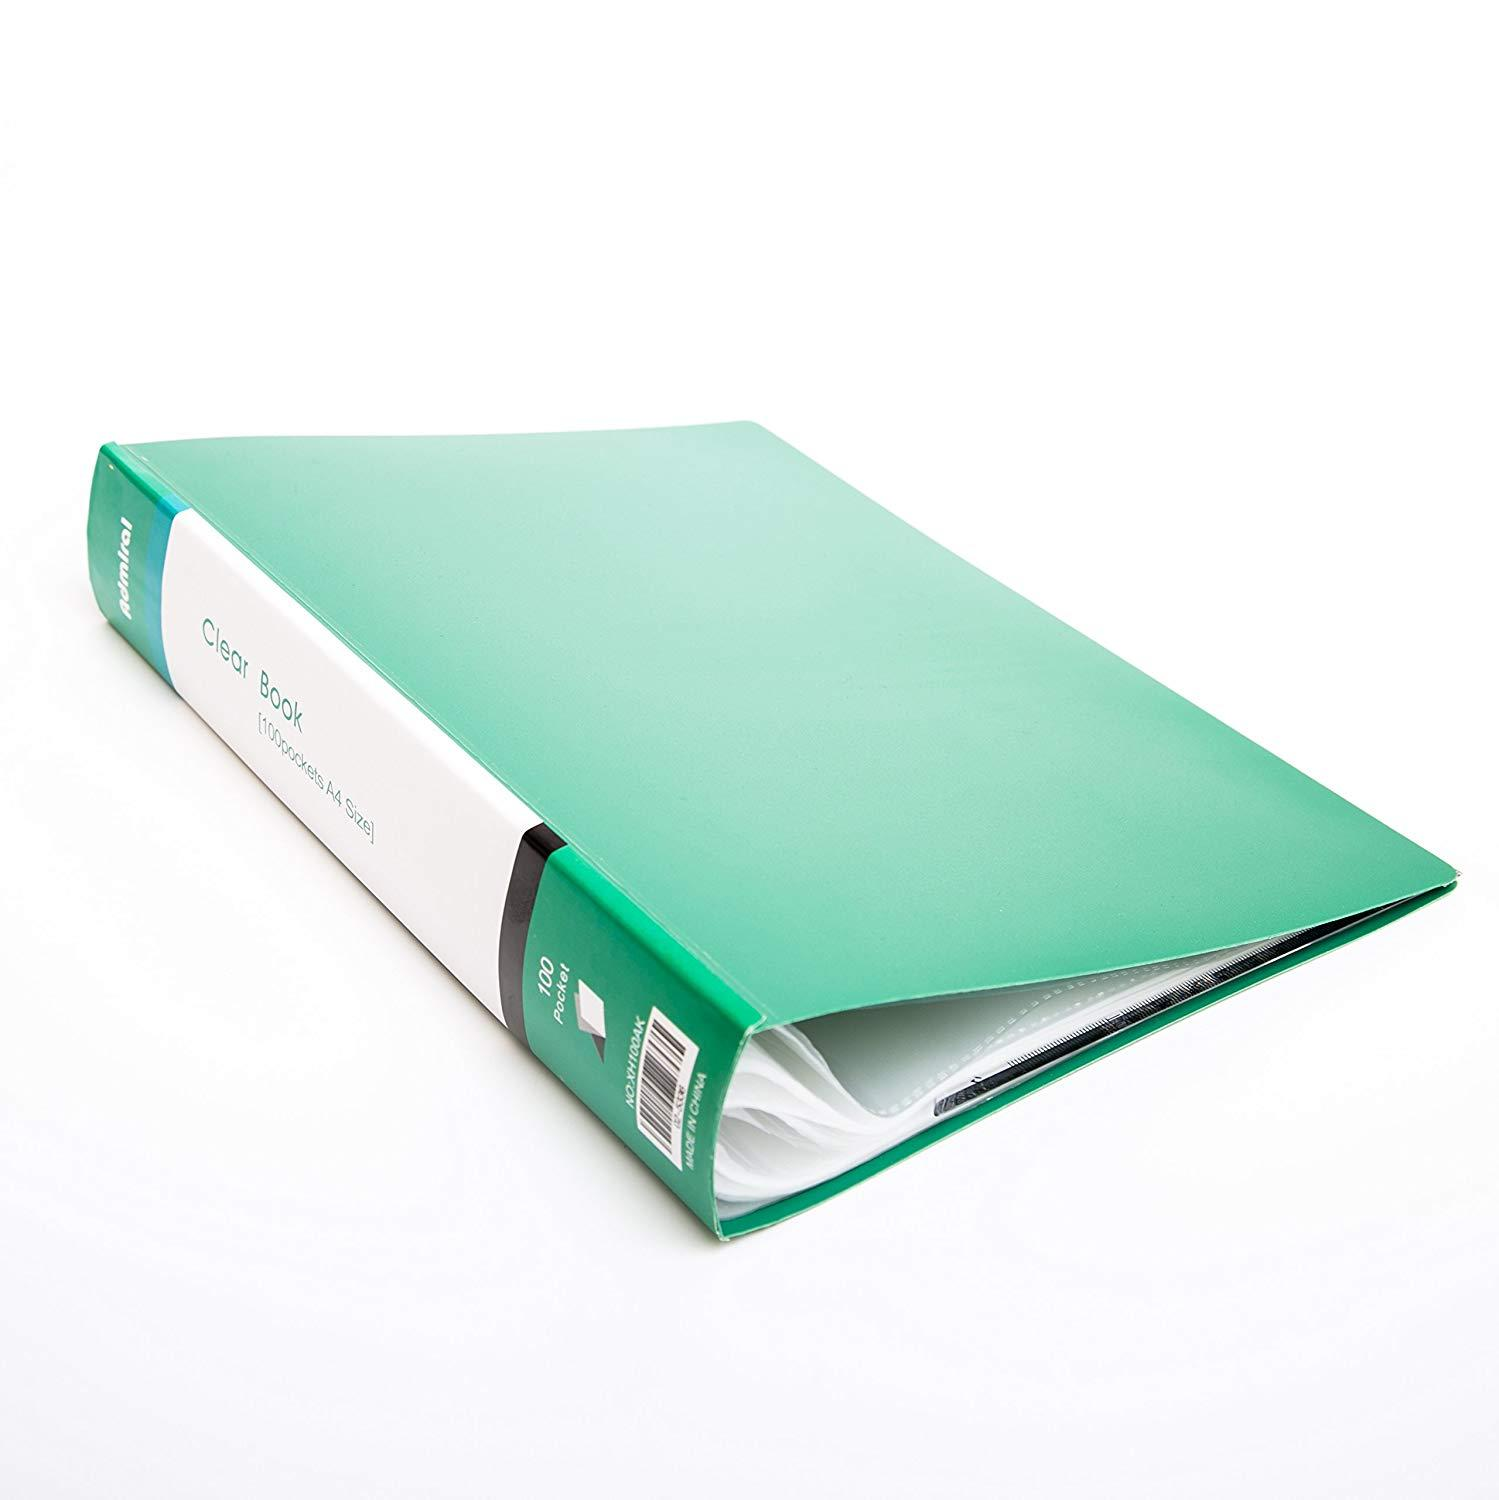 100-Pocket Presentor A4 200- Page Capacity For A4 Paper,Drawing, Art Work, Letters,  Report Sheets Organizer